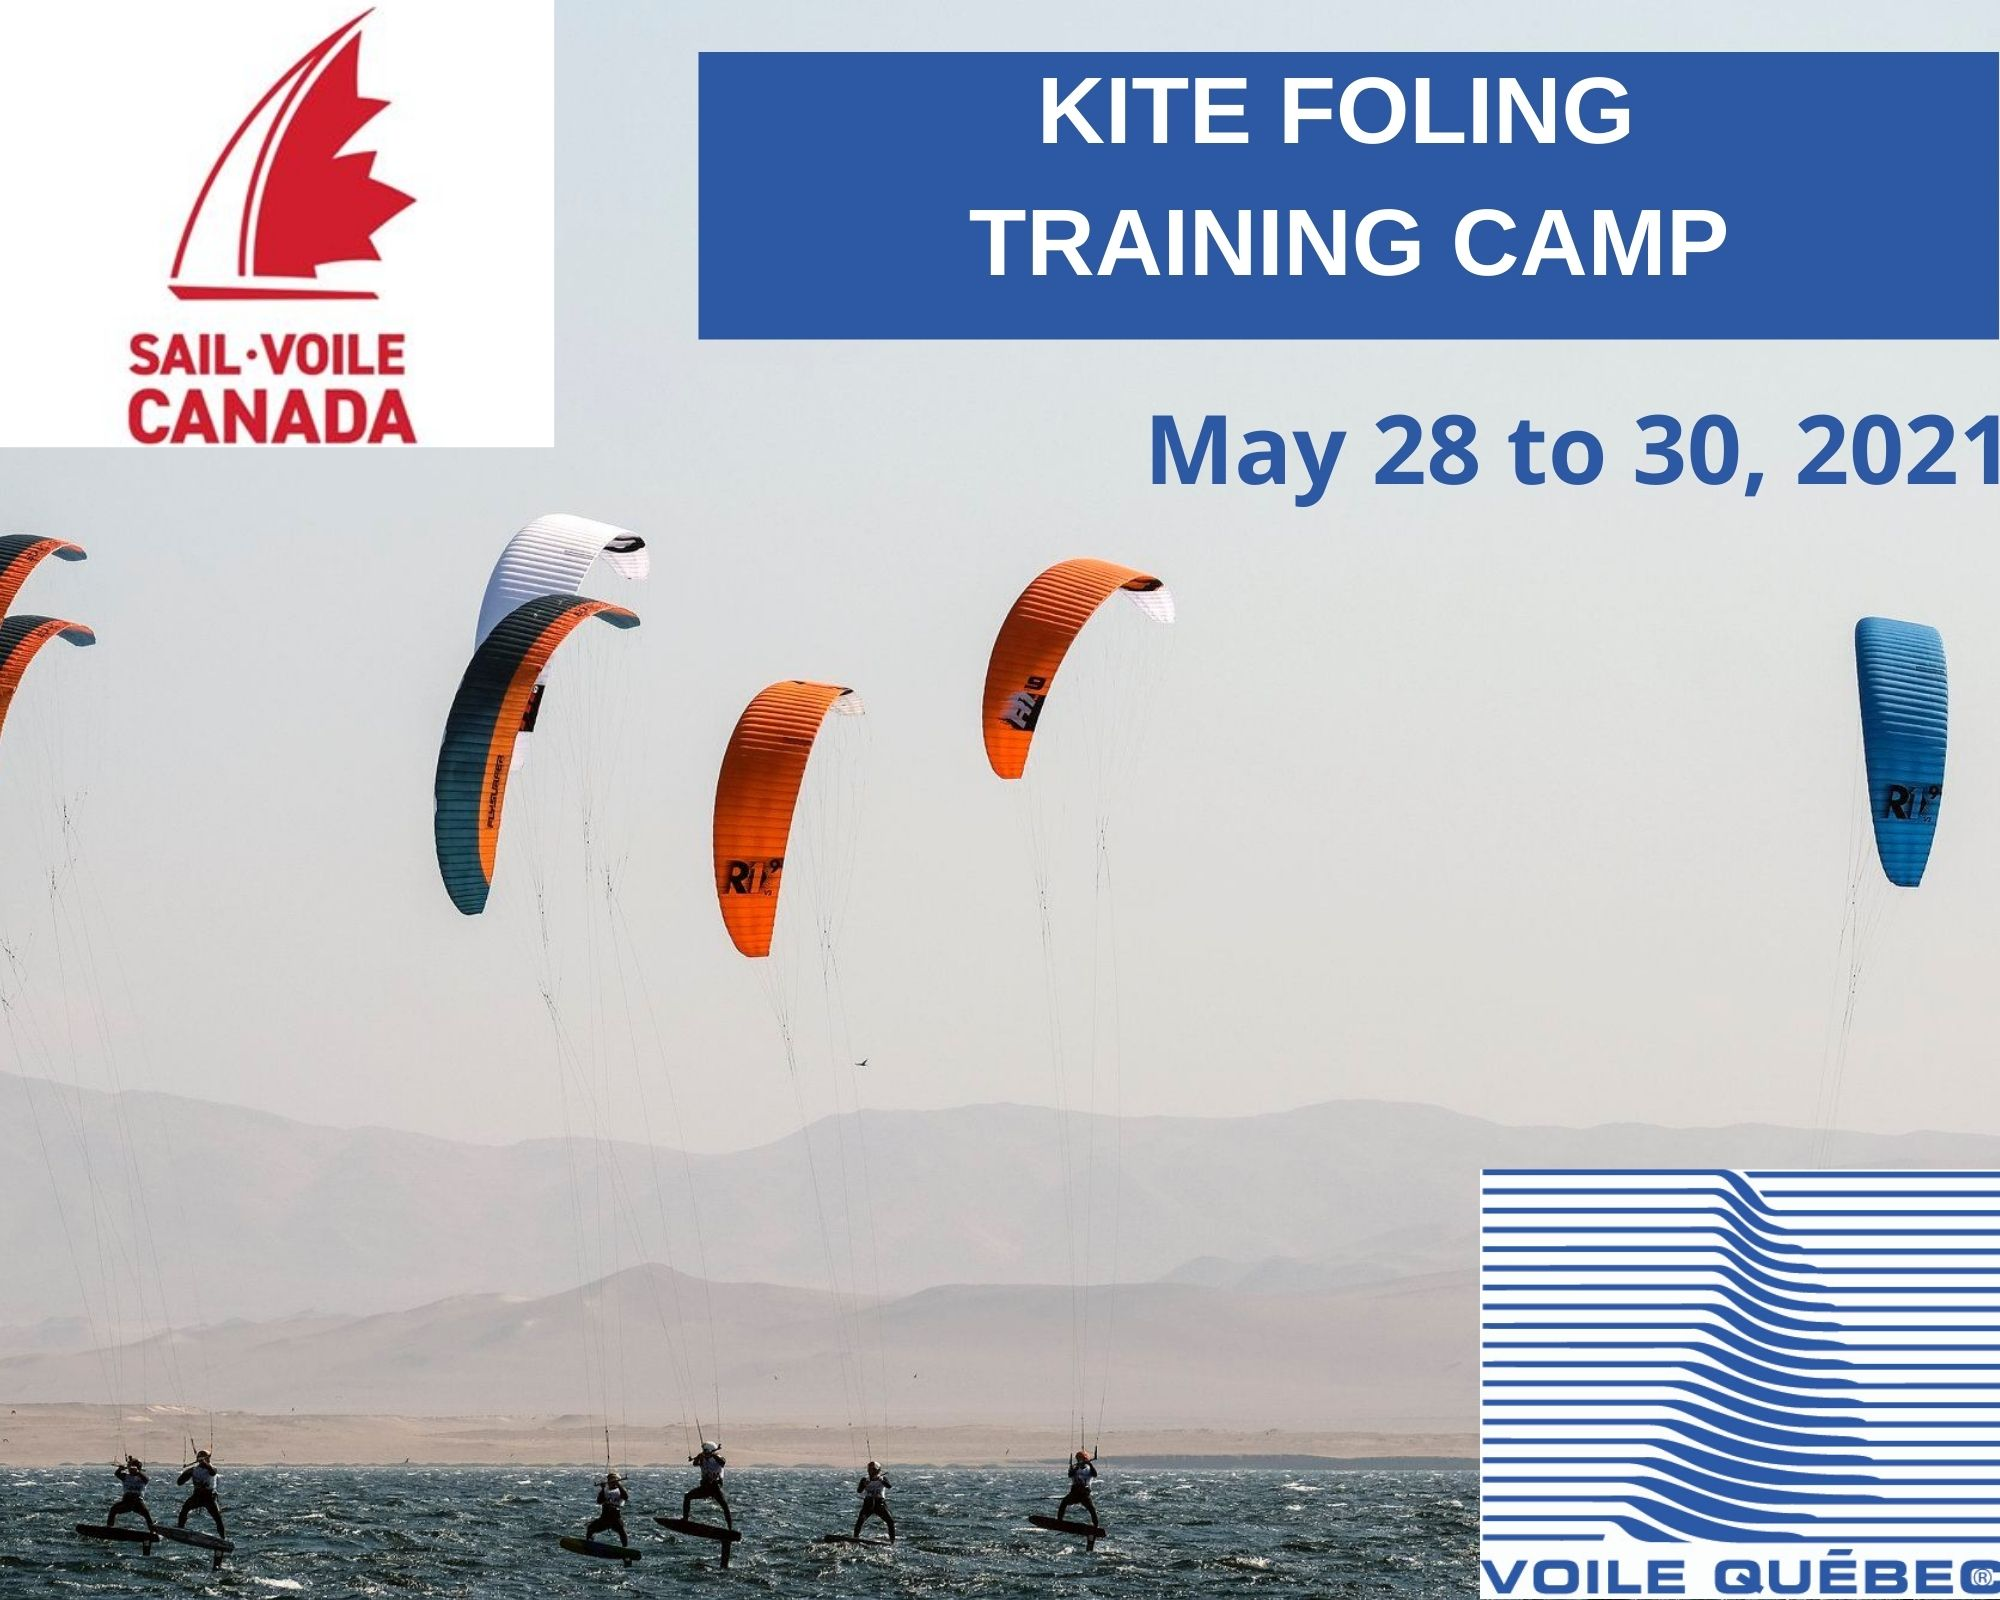 New racing rules seminar for Kite Foil